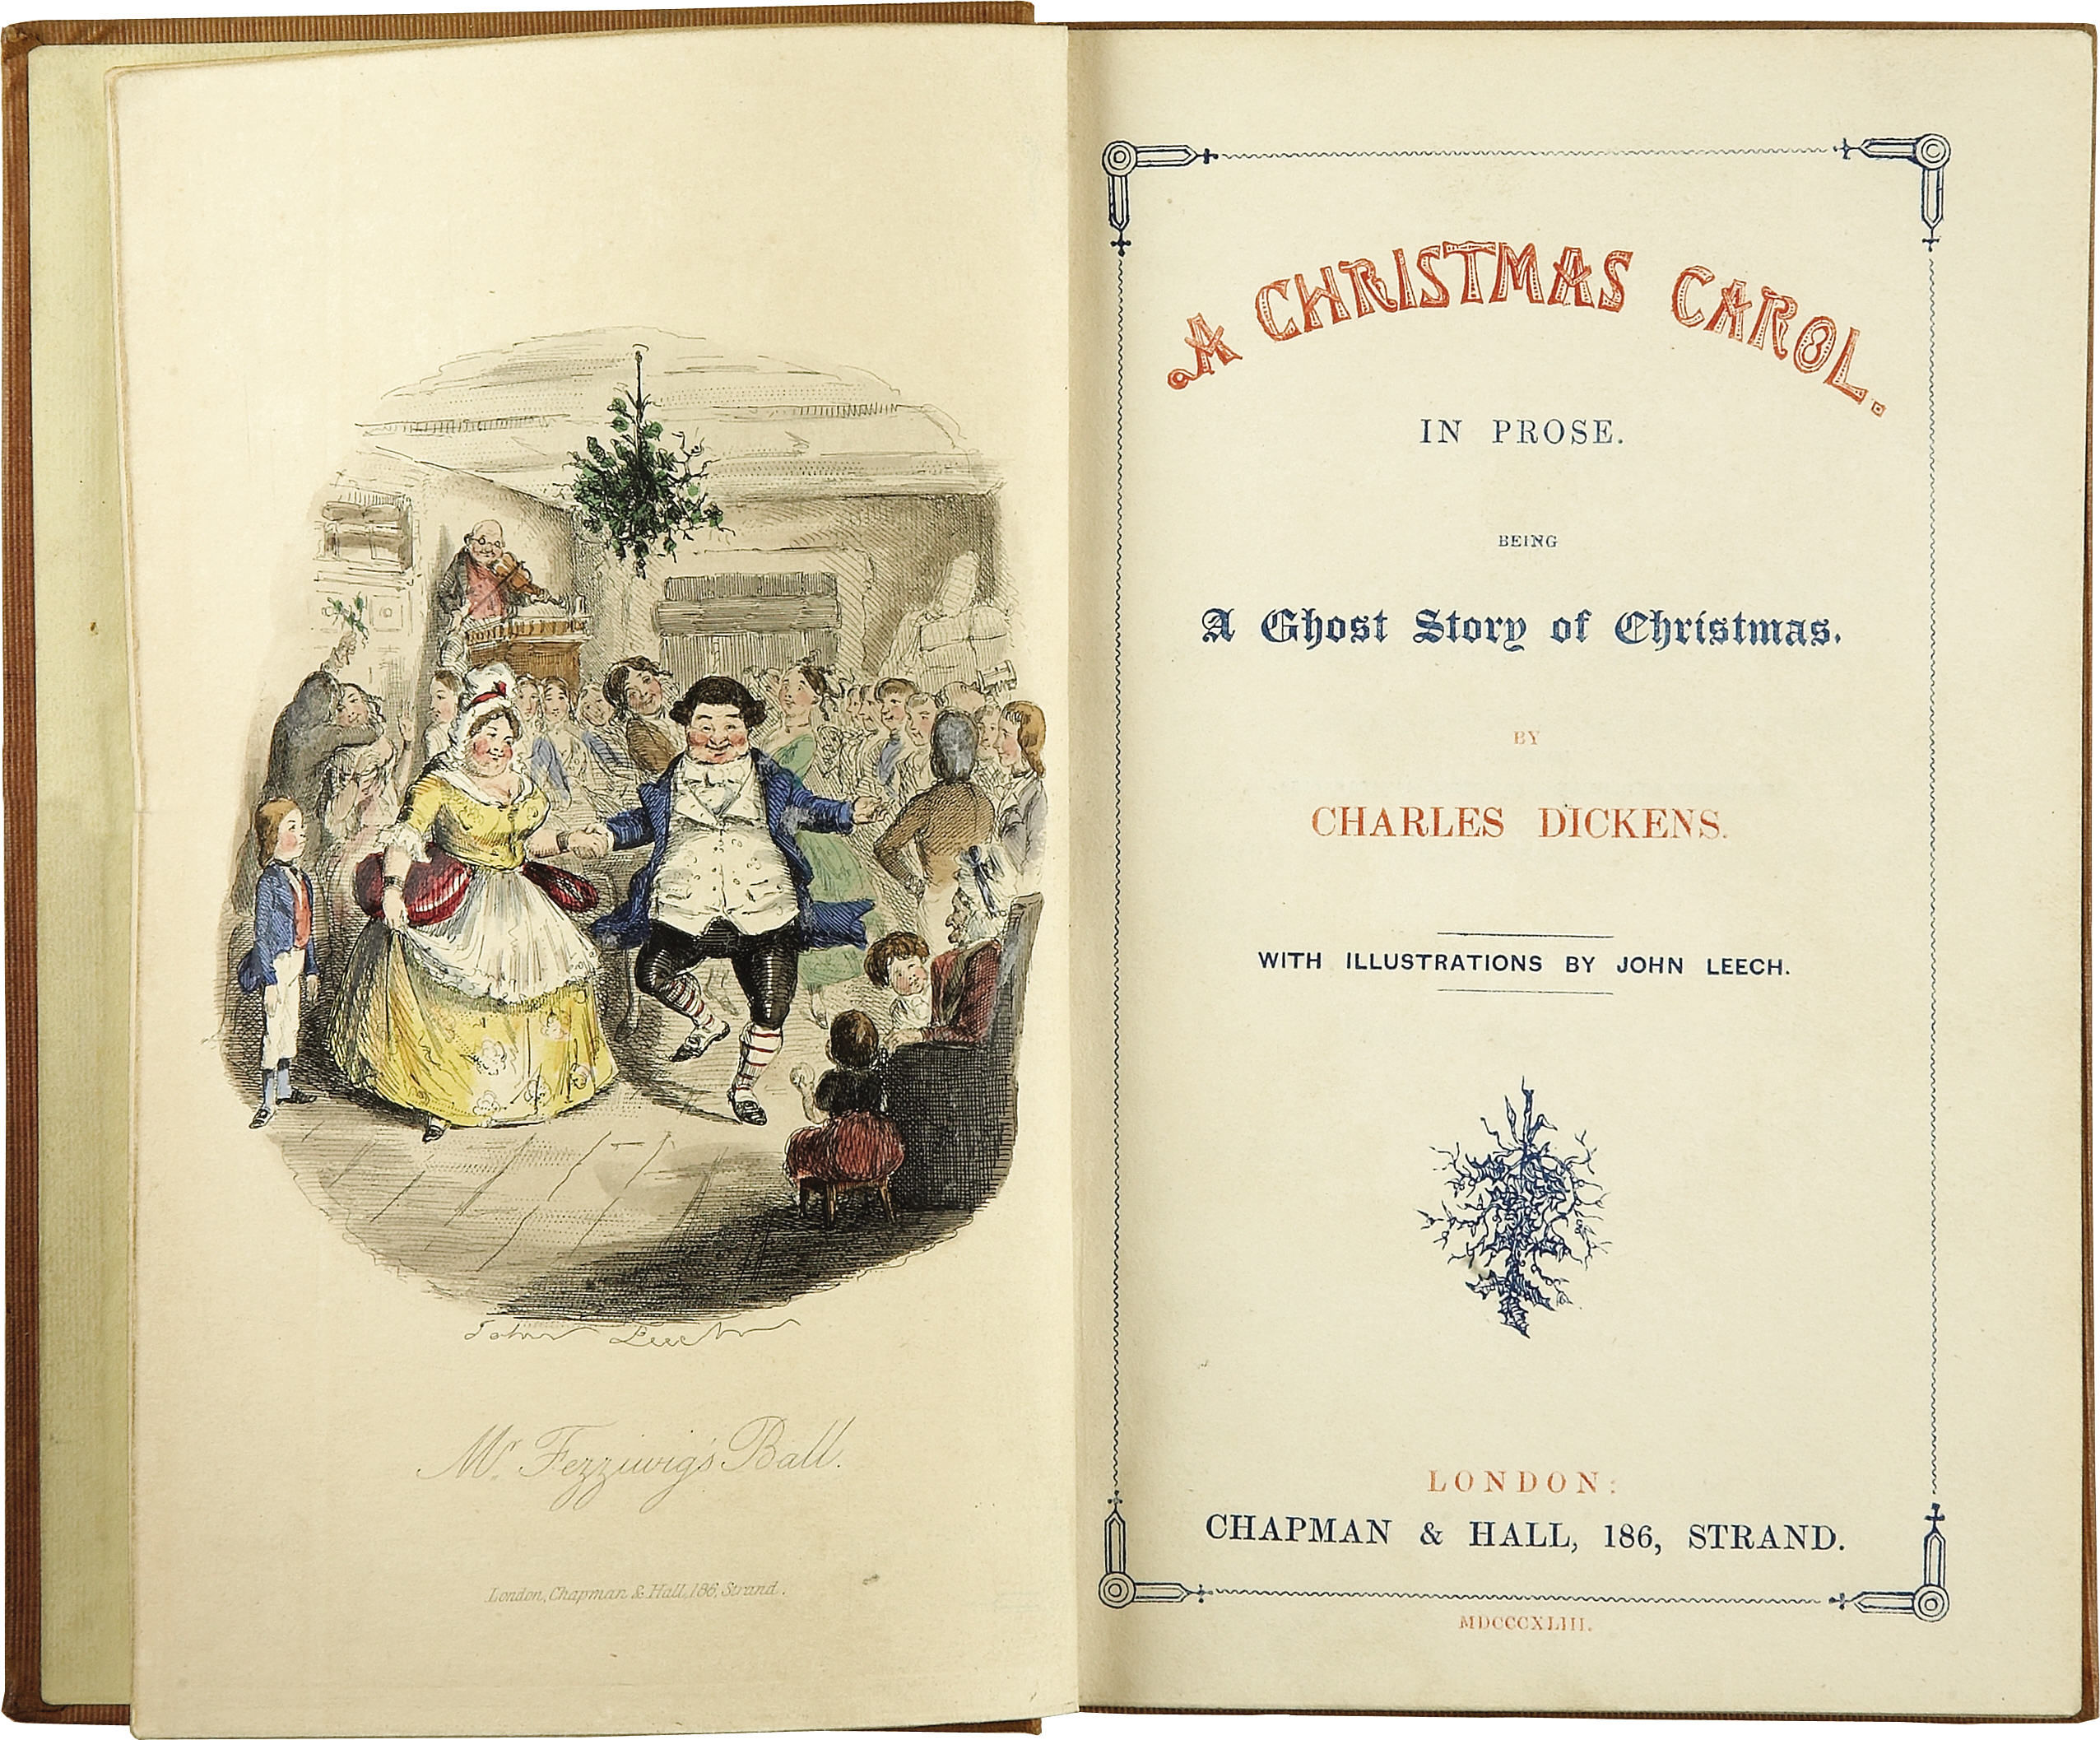 A Christmas Carol How Does Scrooge Change Through Staves 1 - 5?